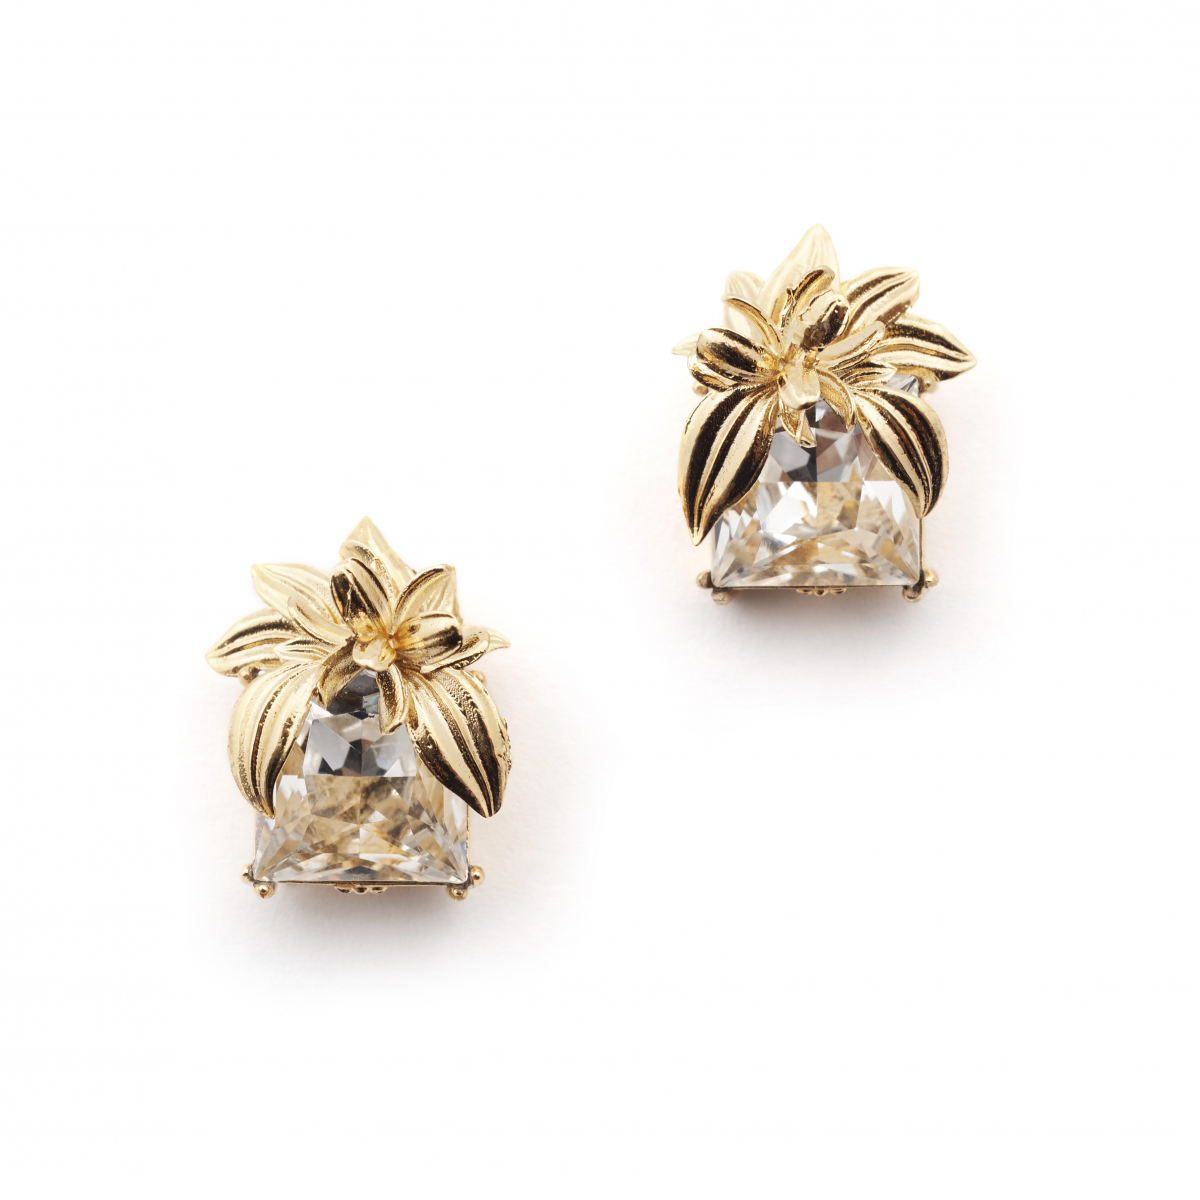 The Evelyn Edit Crystal Stud Earrings - Large